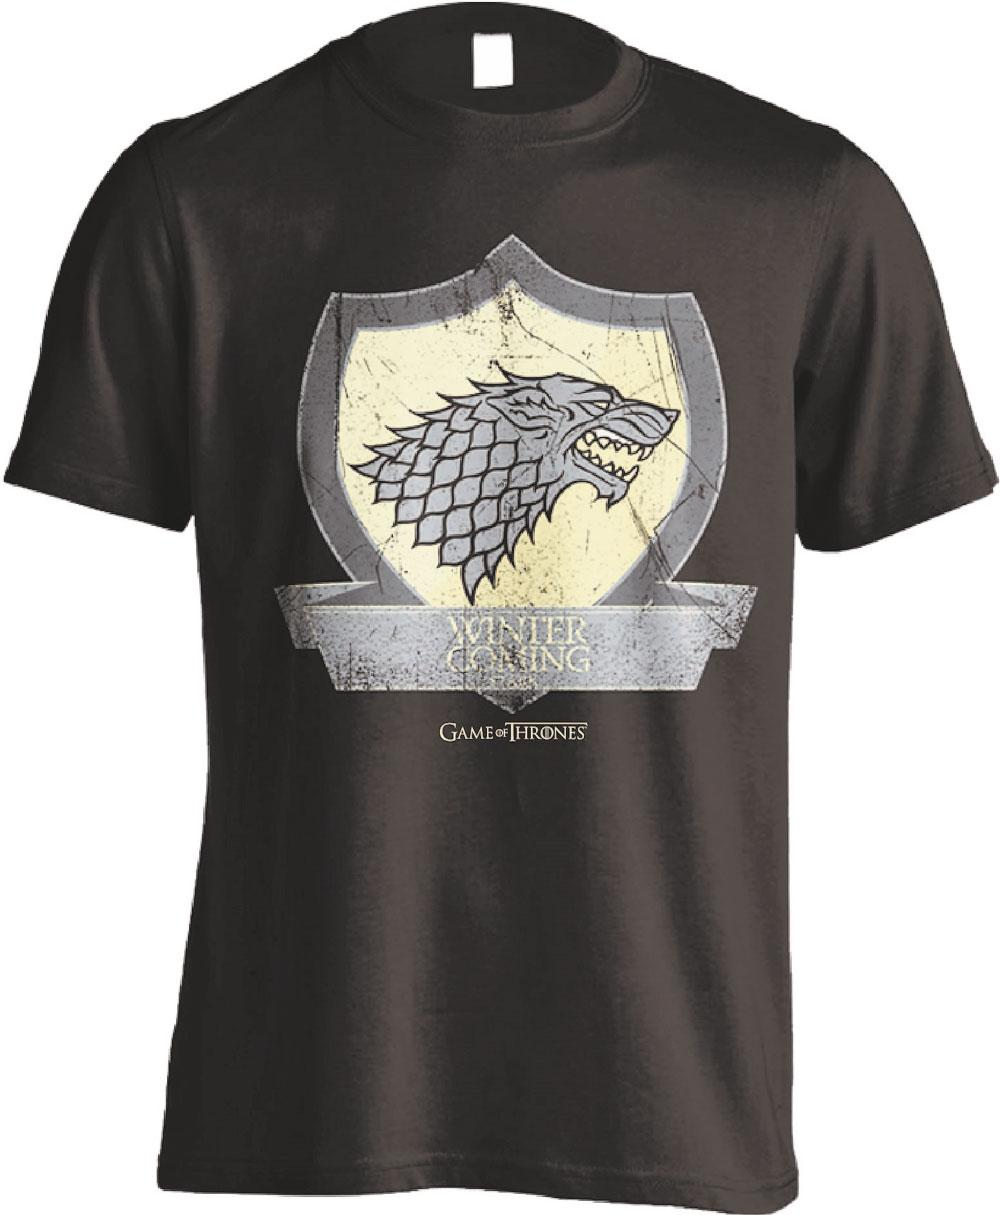 Game of Thrones T-Shirt Stark Coat Of Arms Size M